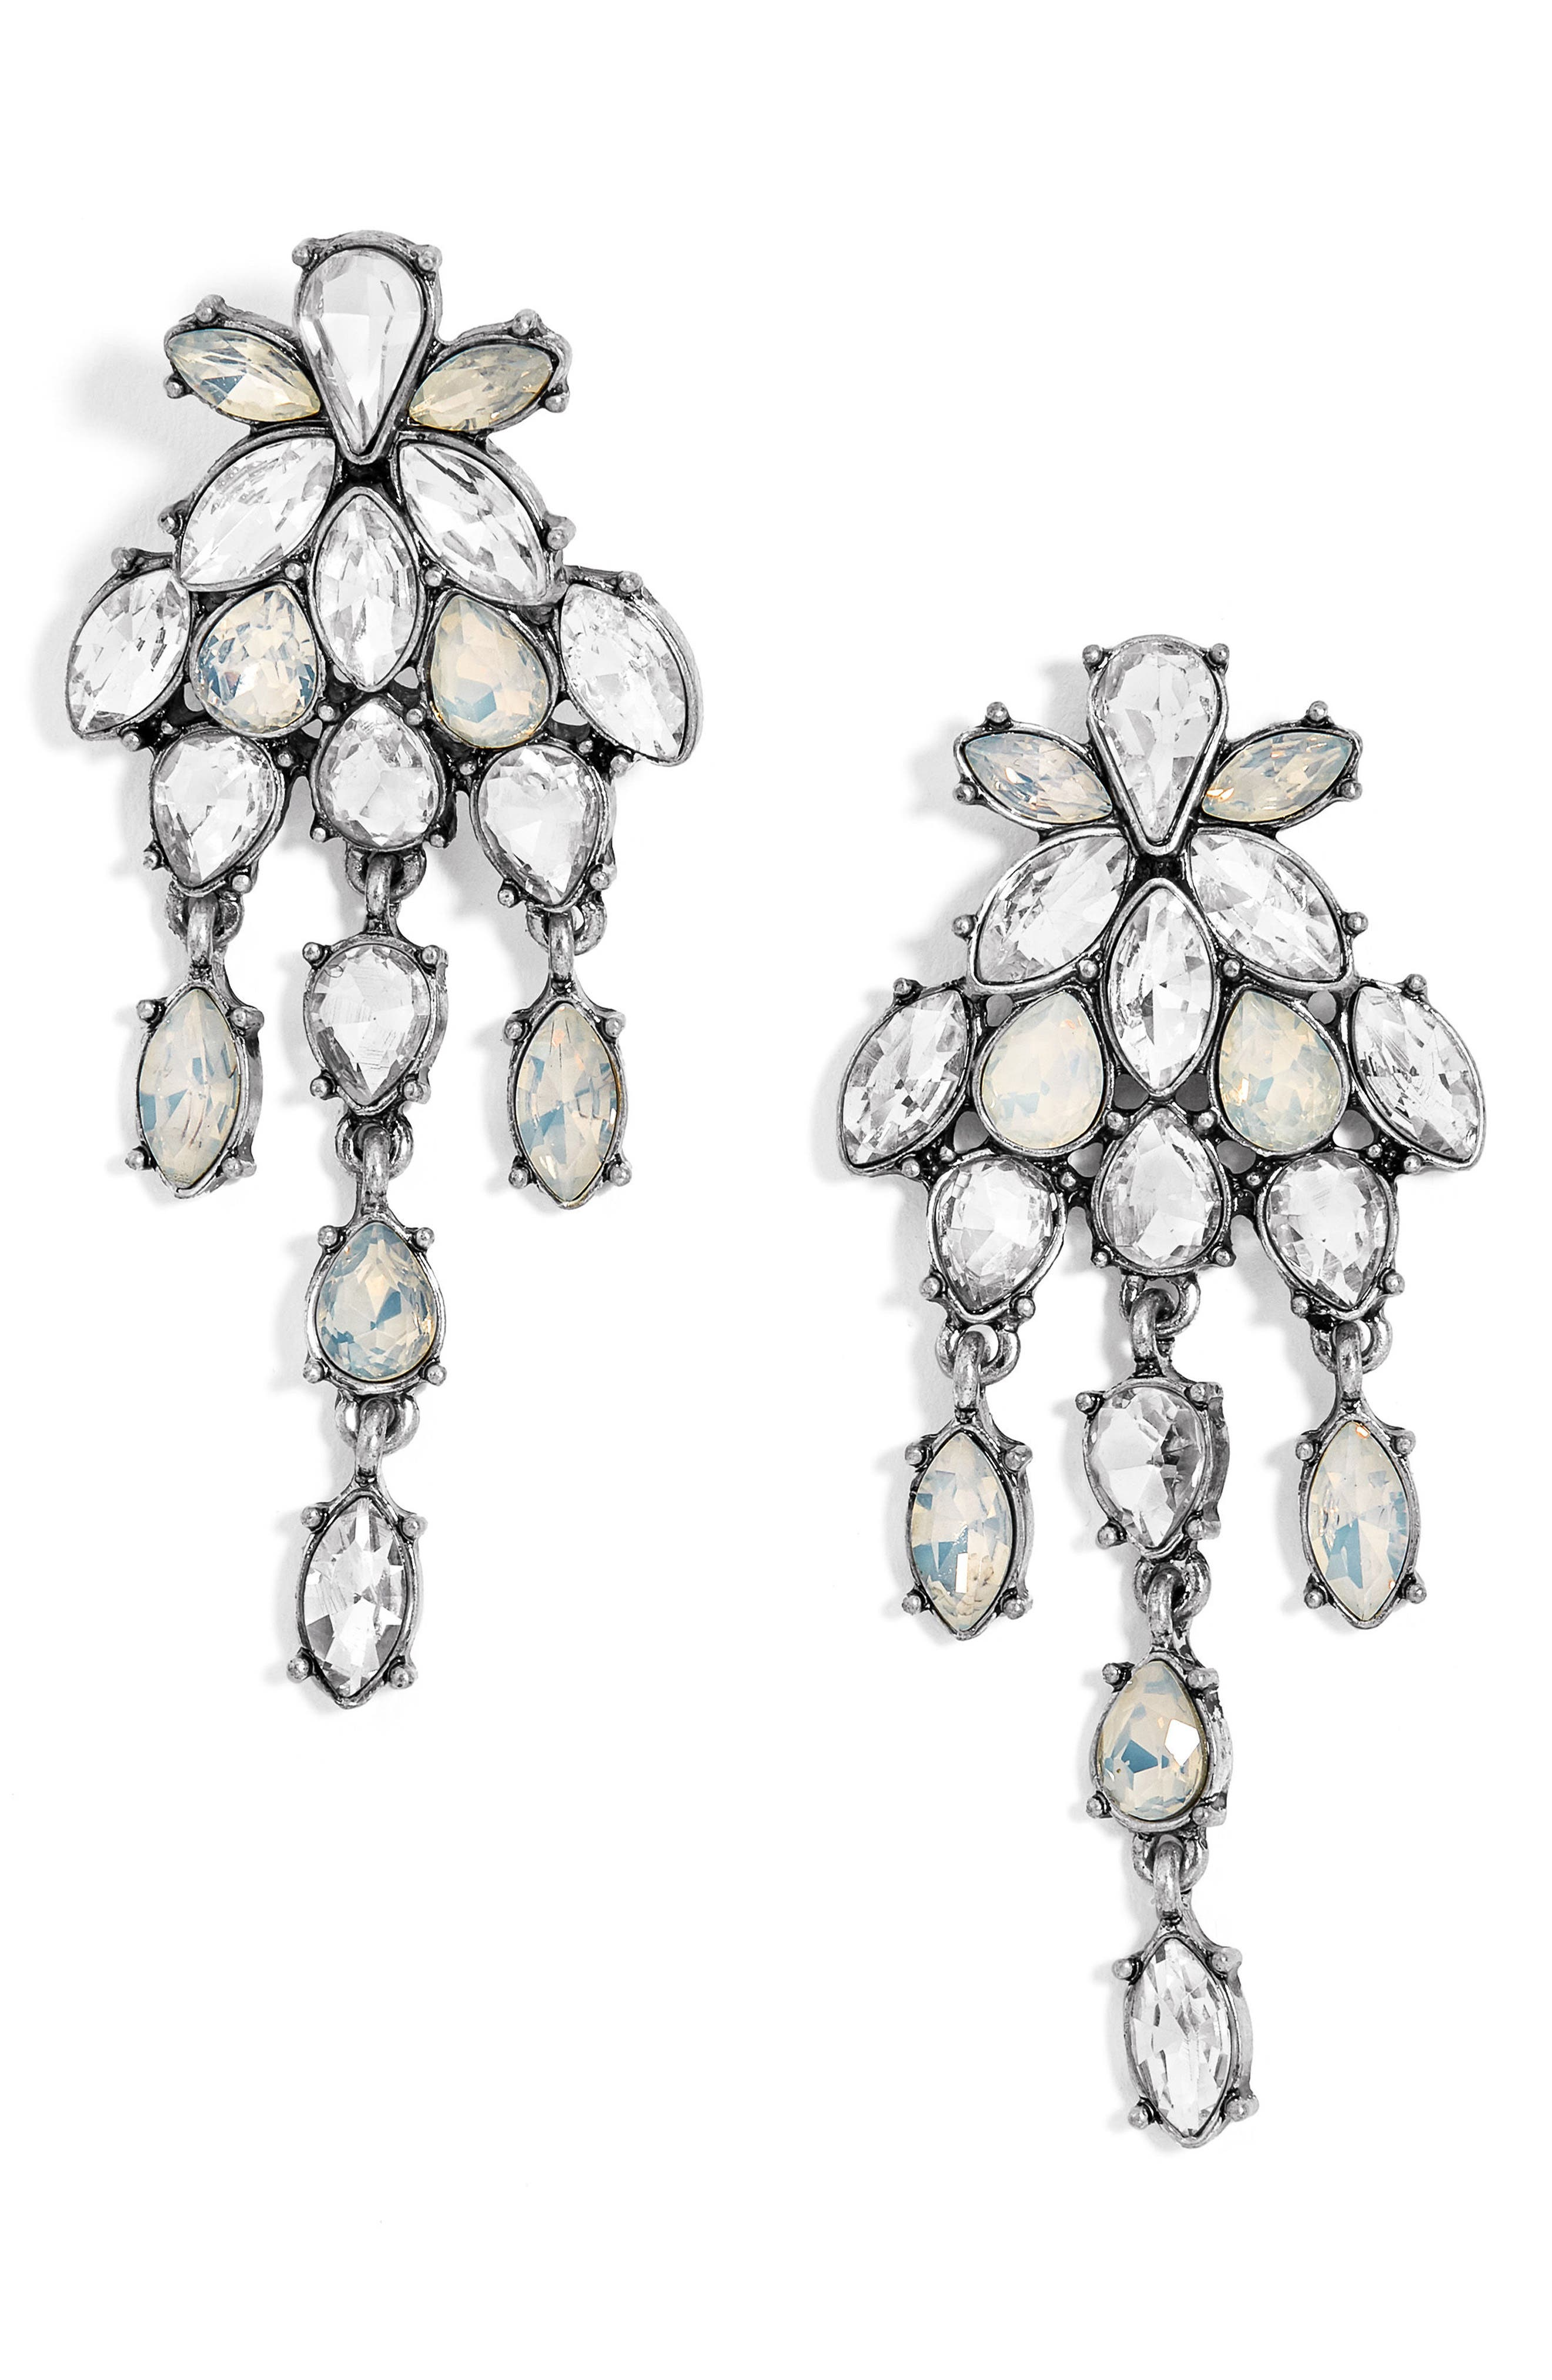 Chandelier Crystal Drop Earrings,                             Main thumbnail 1, color,                             040